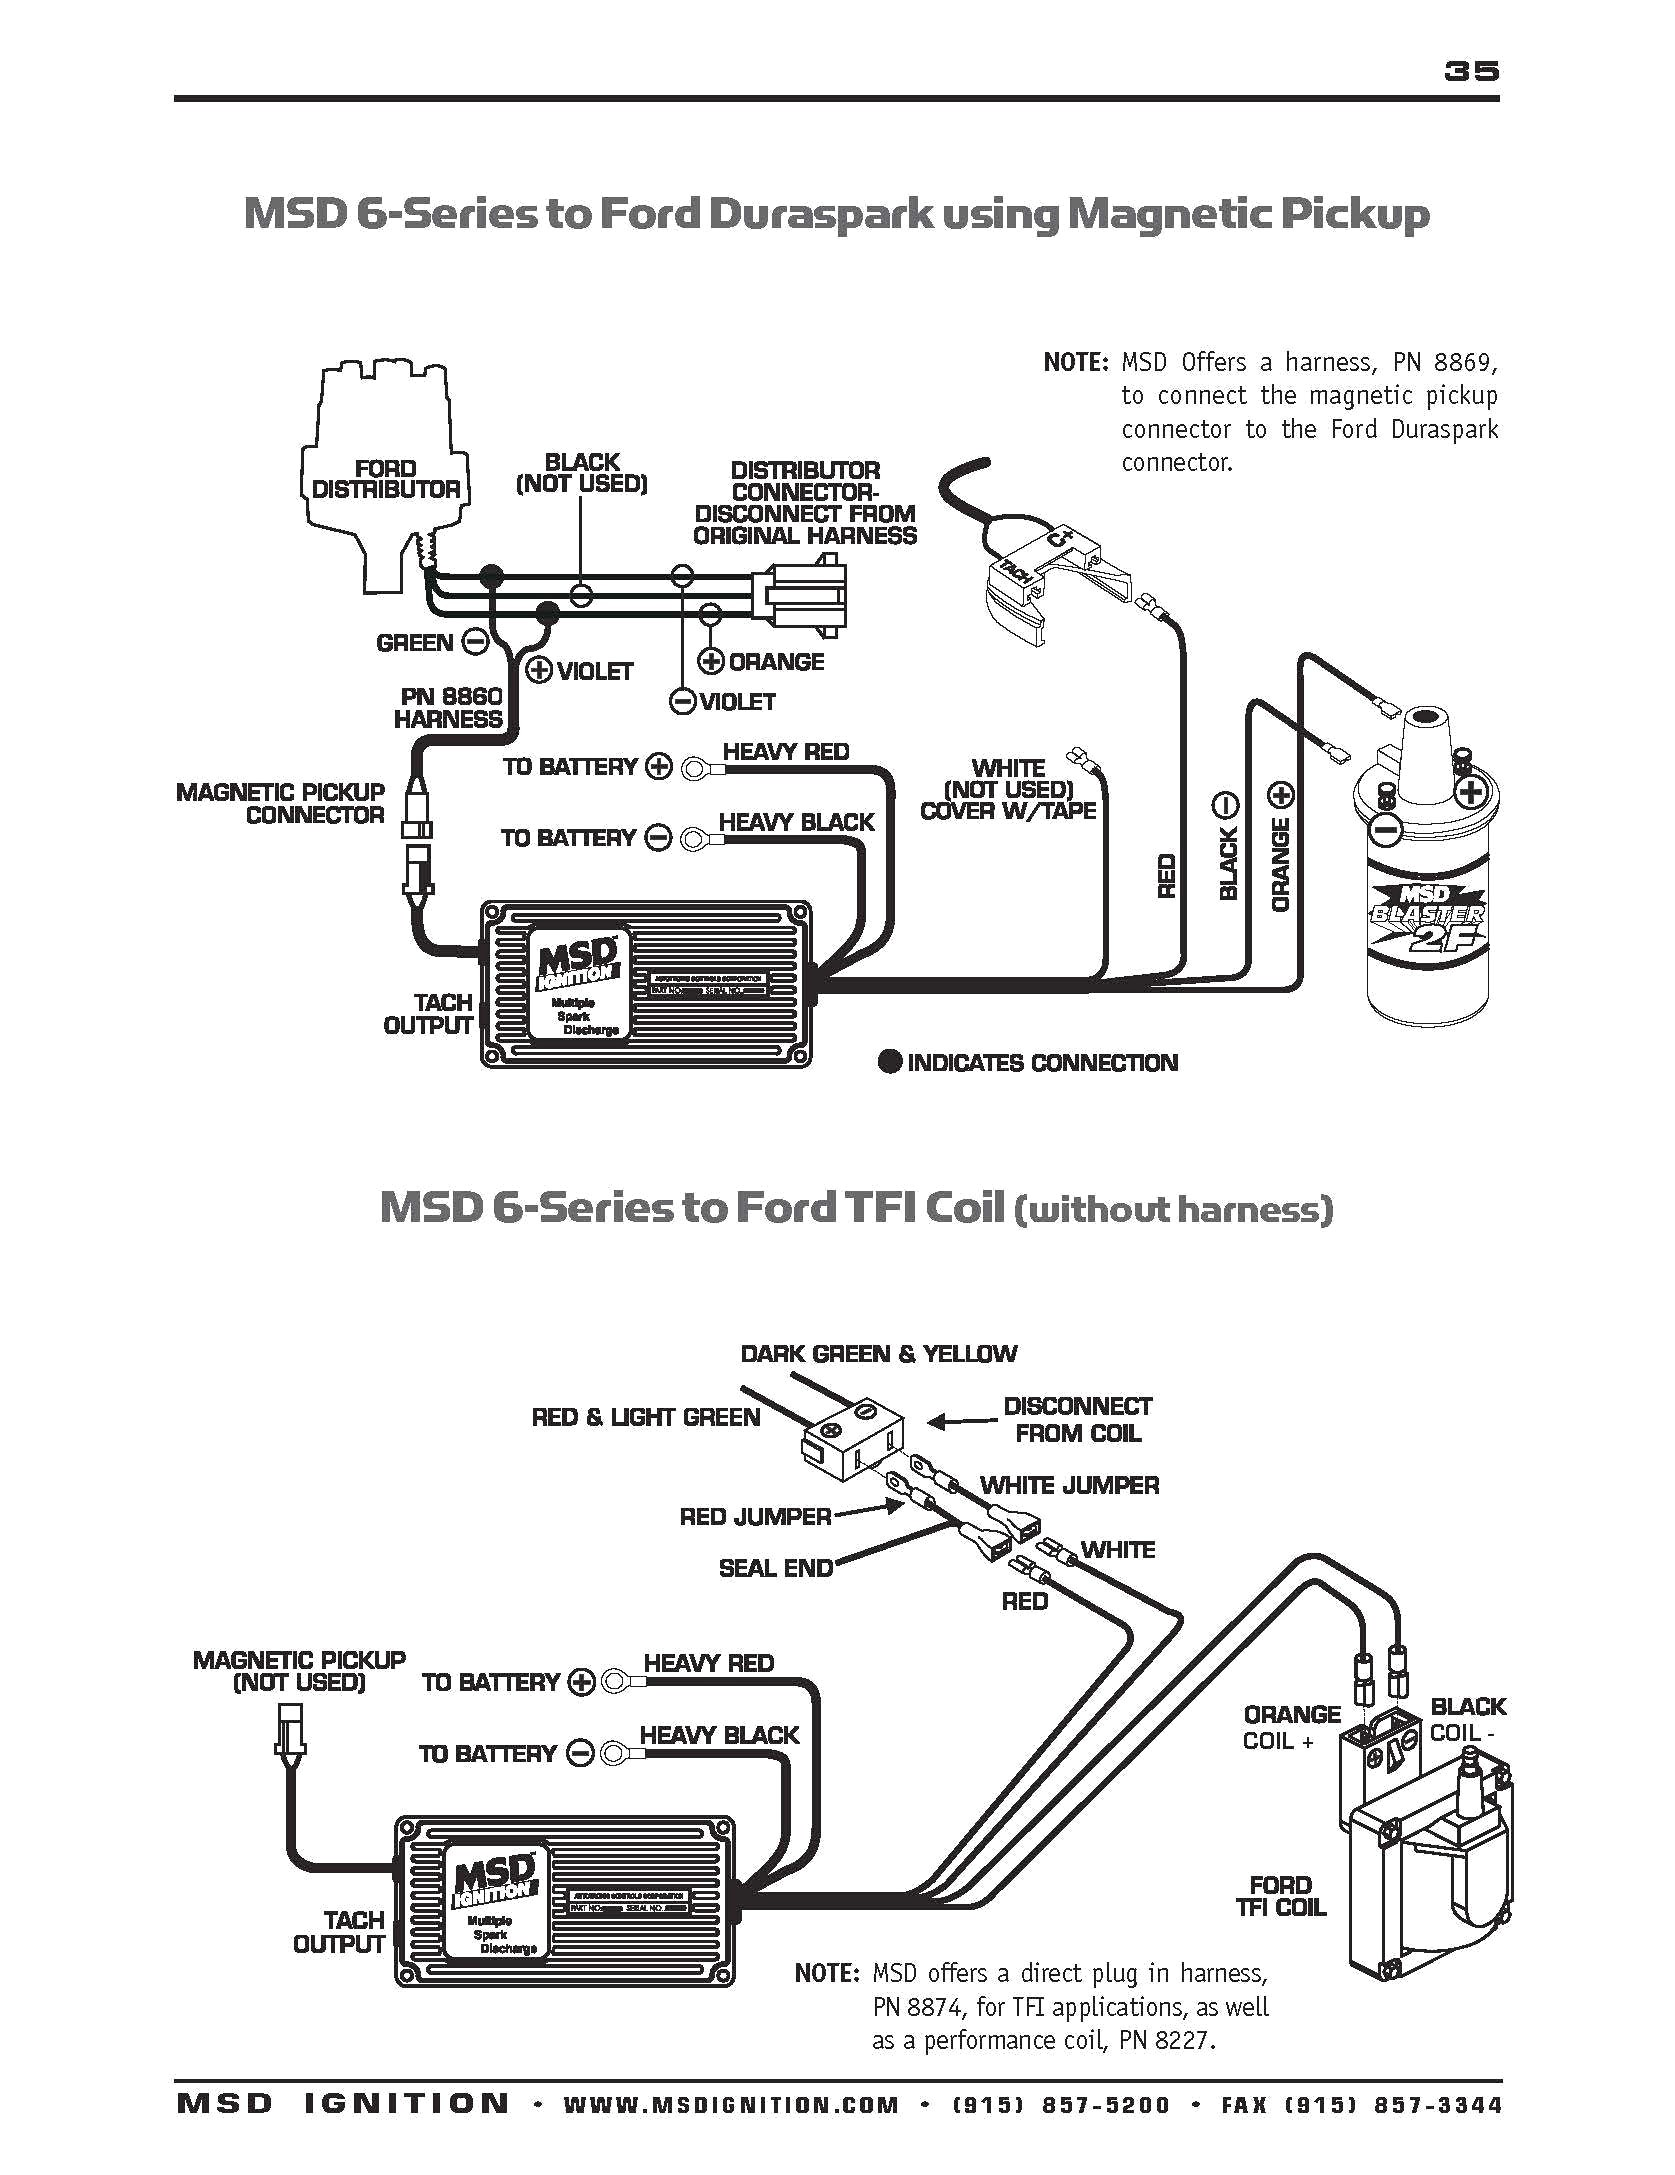 Attractive Msd Ignition 6200 Wiring Diagram Motif - Wiring ...